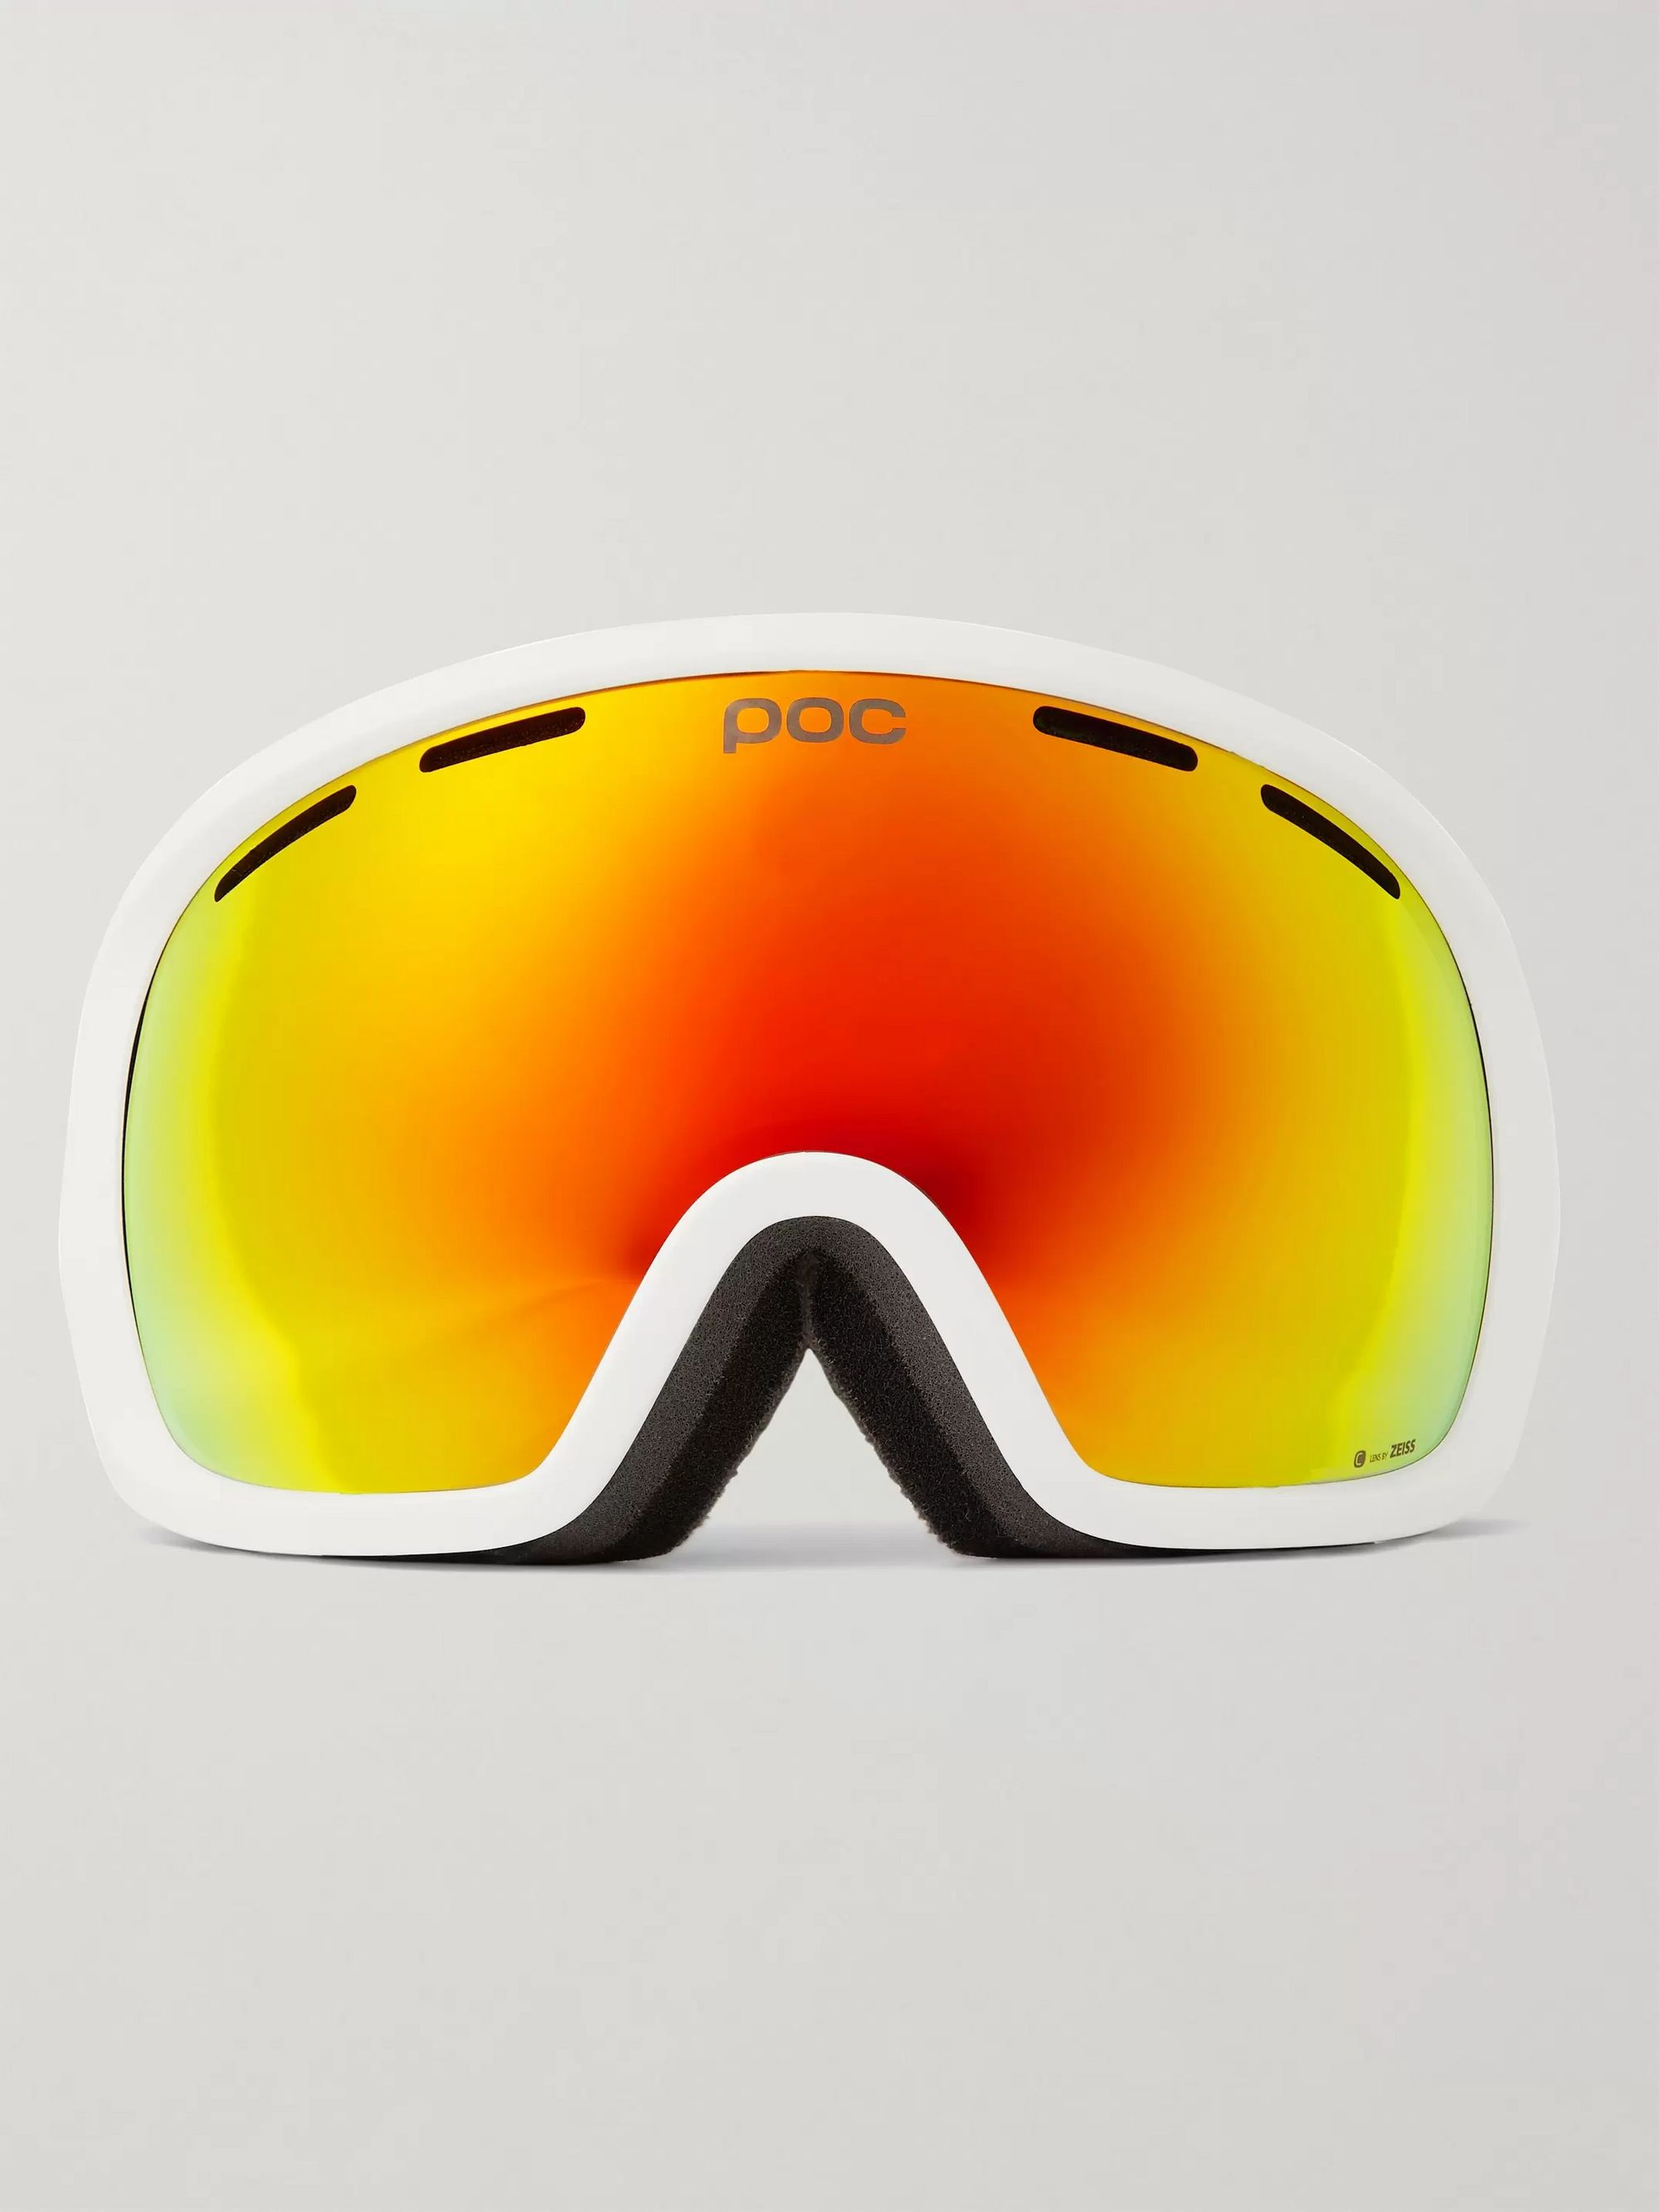 POC Fovea Clarity Mirrored Ski Goggles